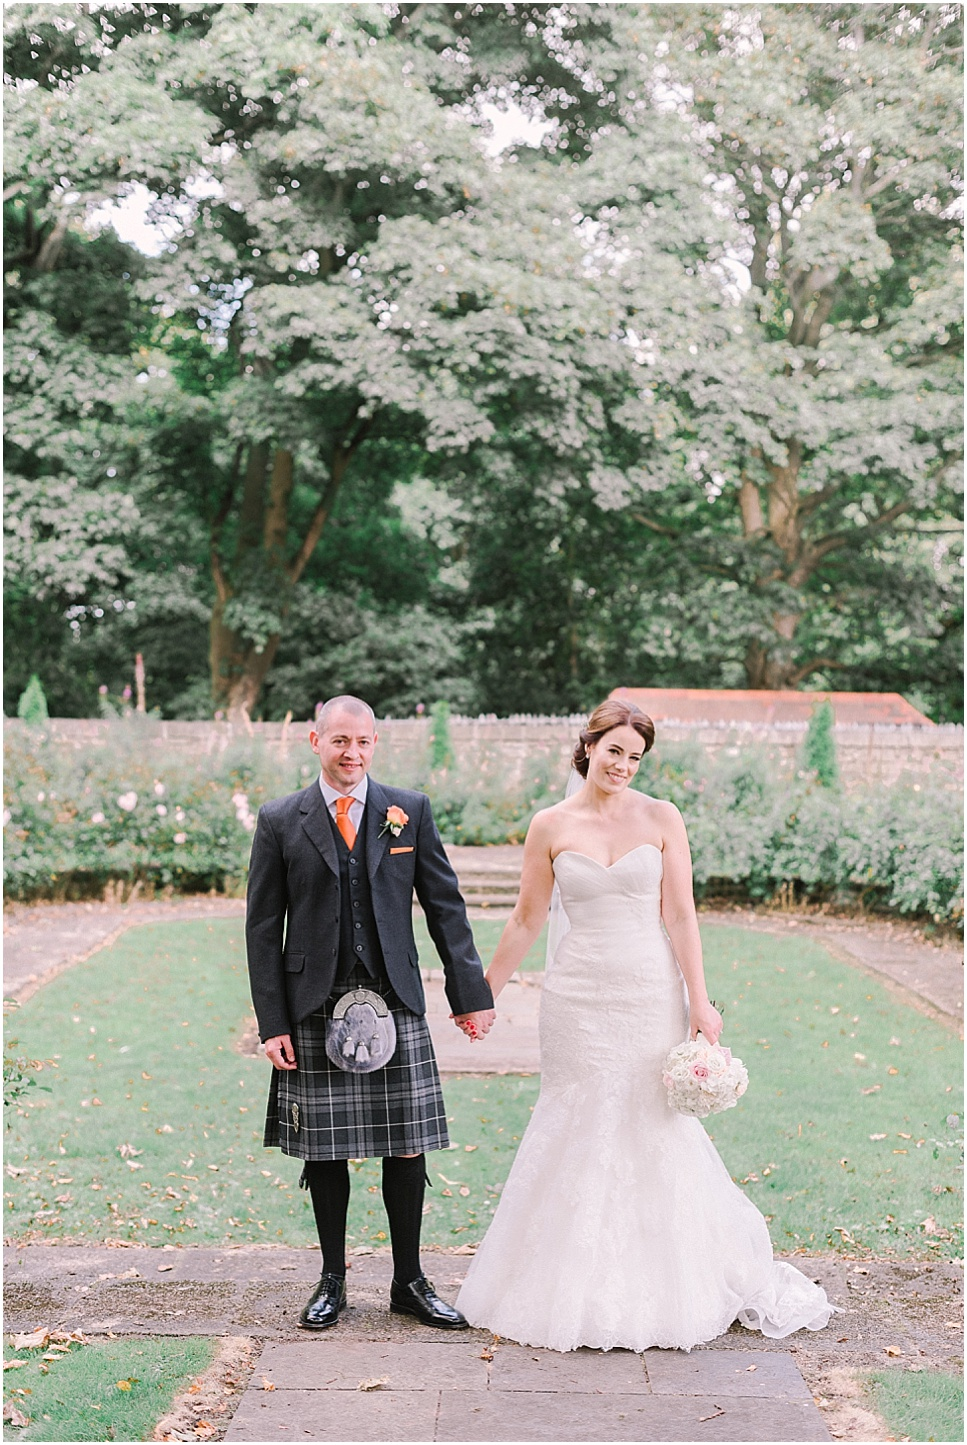 mareikemurray_wedding_photography_linlithgow_burgh_halls_053.jpg